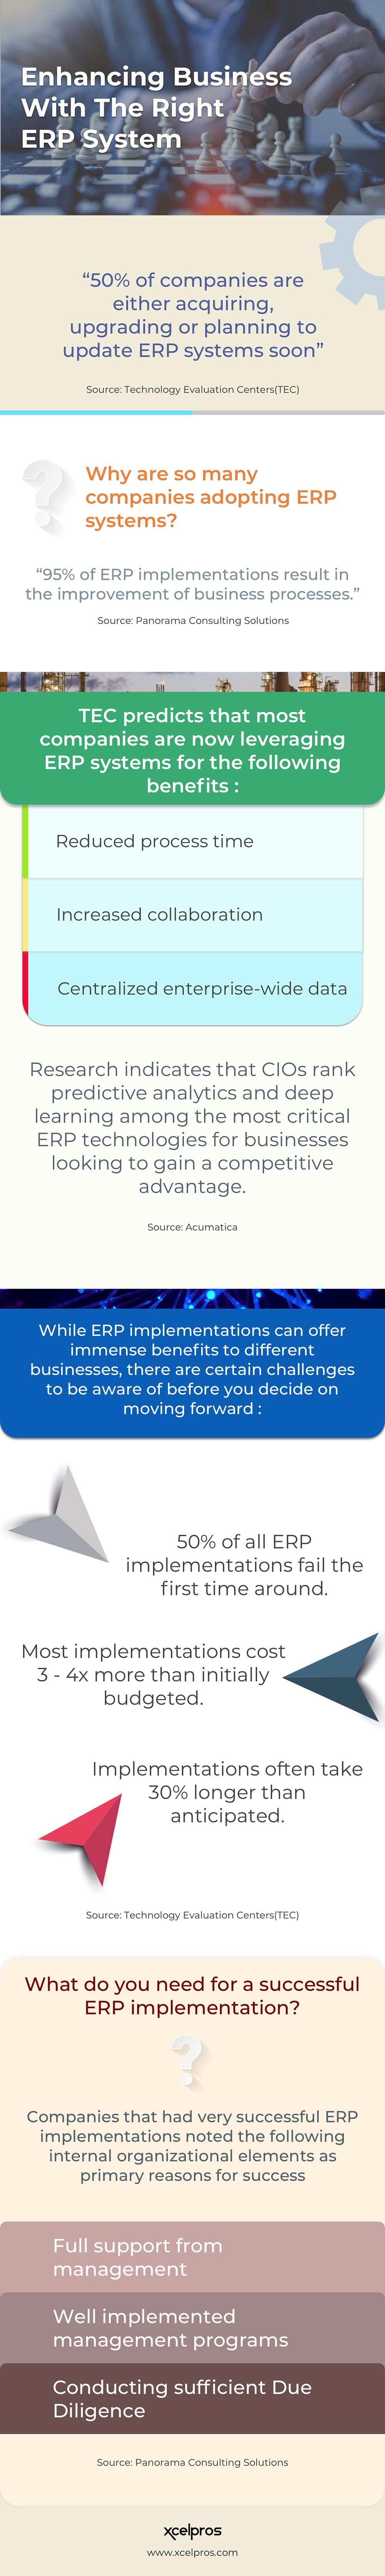 Choosing the Right ERP System for Increasing Business Outcomes